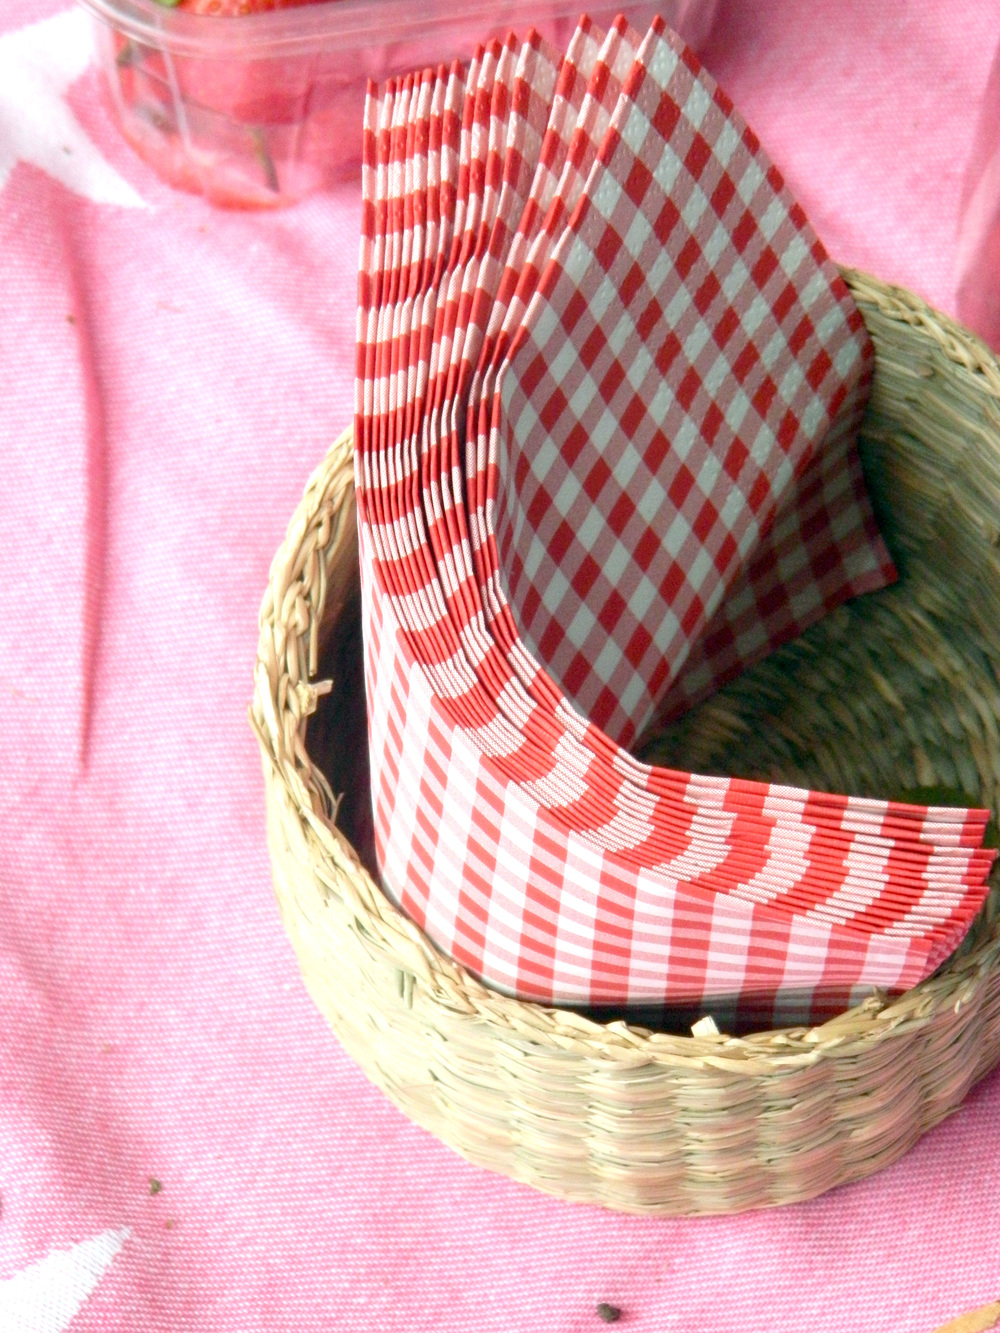 Ain't quite a picnic without red and white checked right?